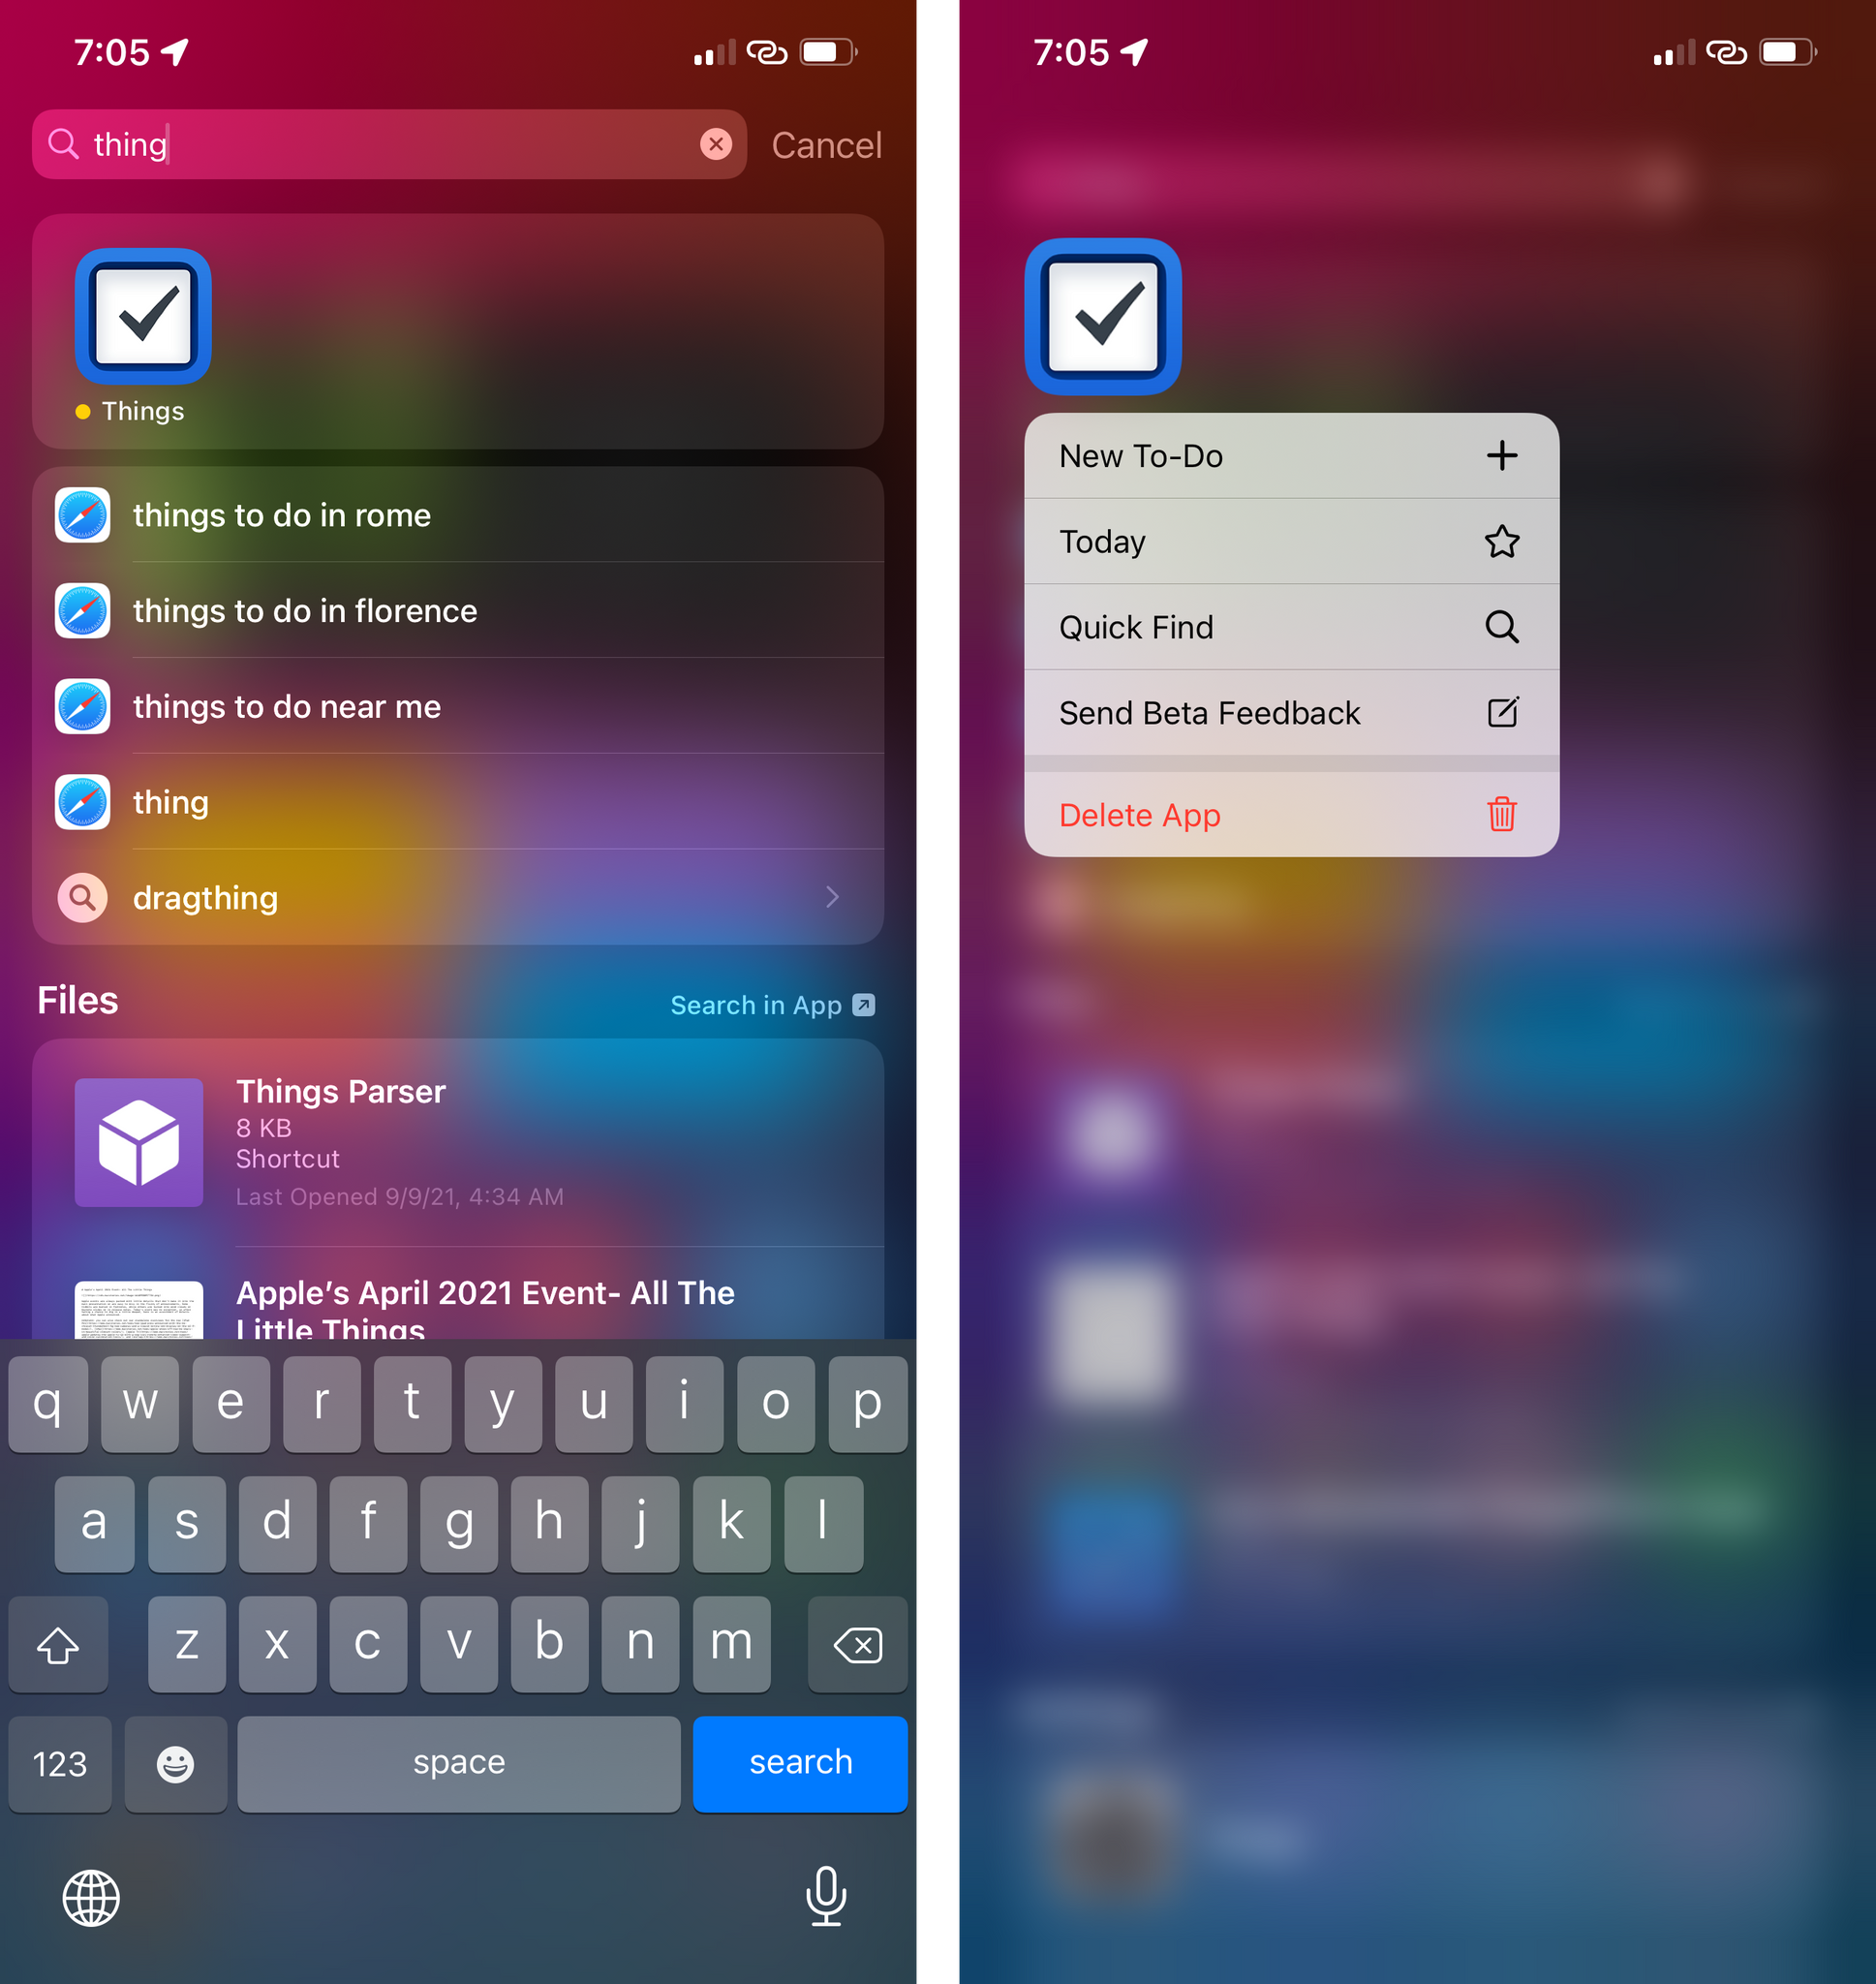 You can now delete apps from Spotlight.